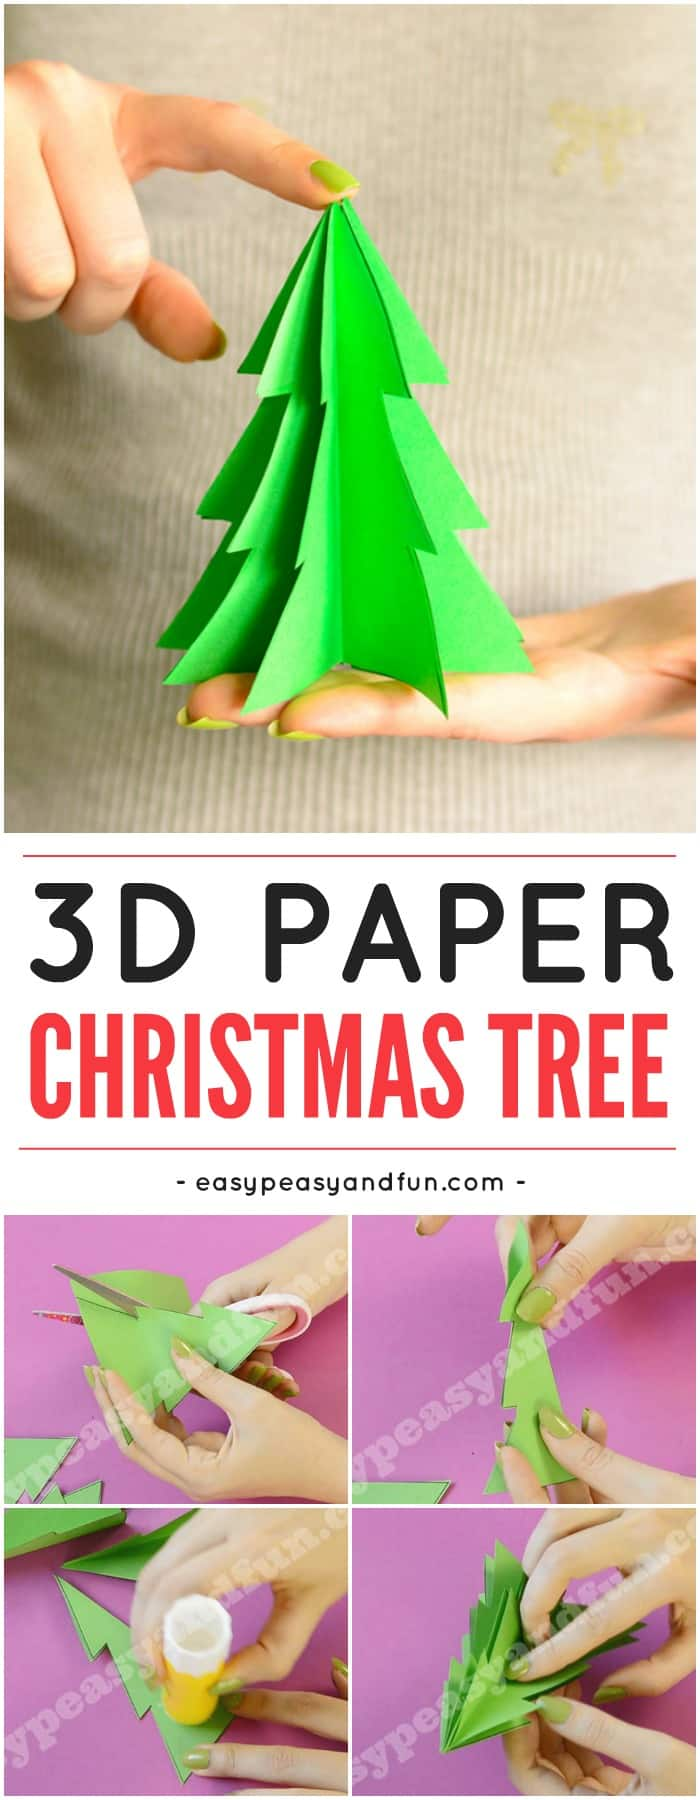 3D paper Christmas tree template. Fun Christmas craft for kids to do. It would work as a Christmas ornament too.